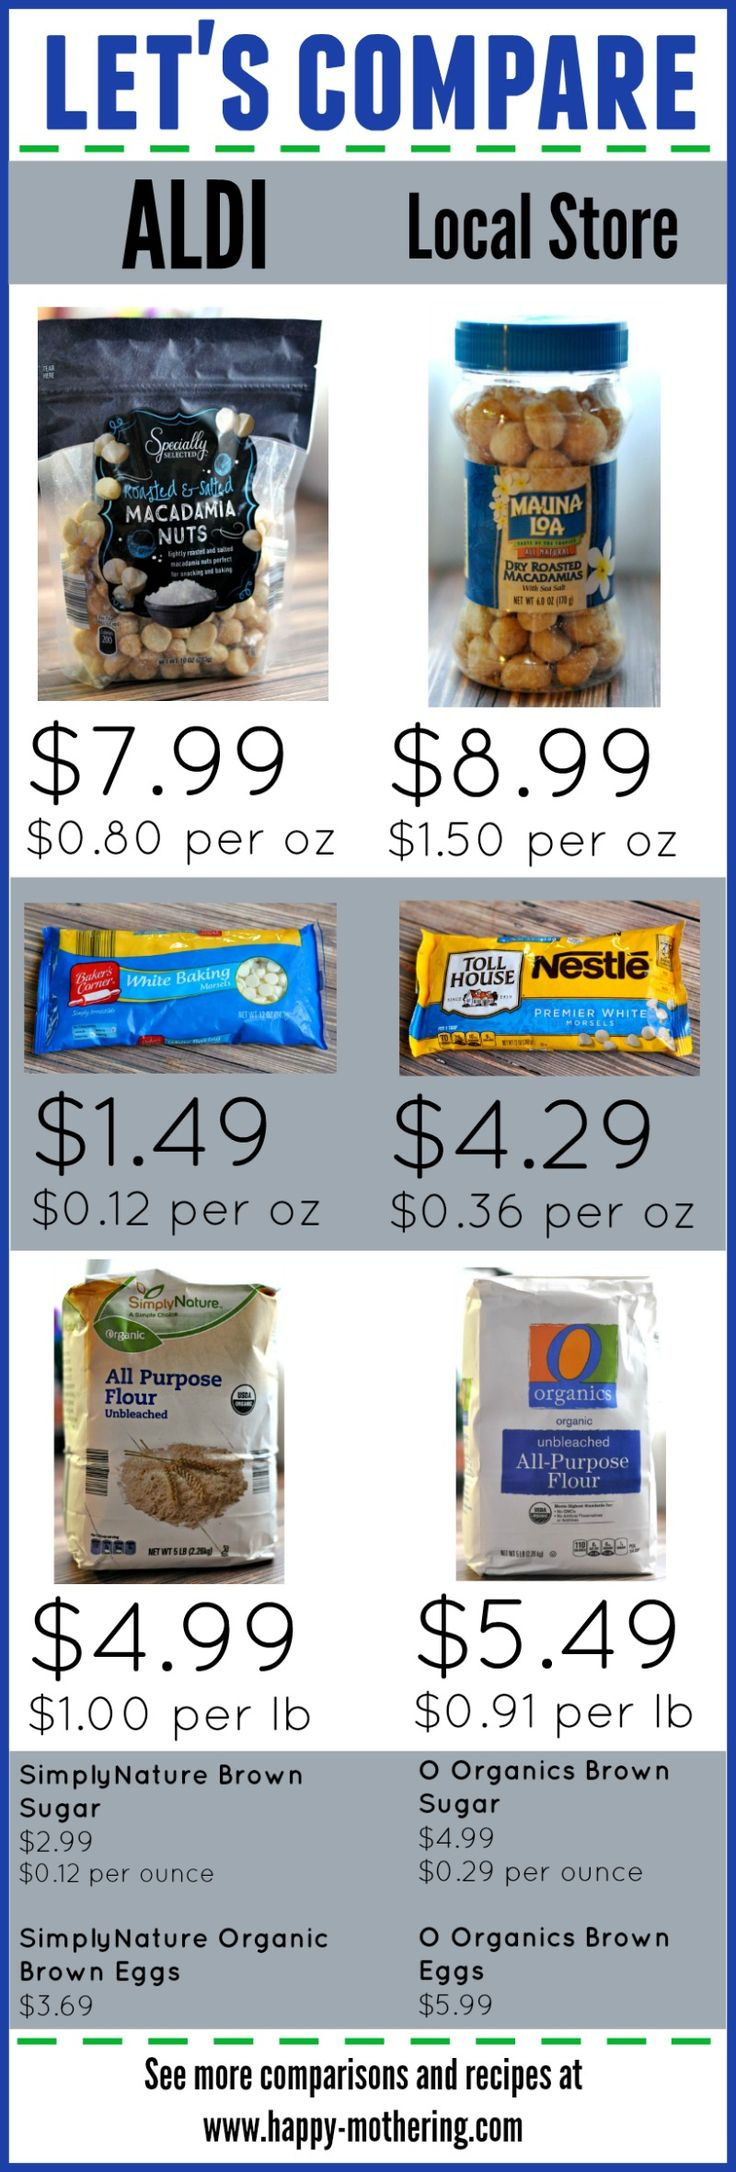 •We decided to do a price comparison between ALDI and our local grocery store when we made our classic White Chocolate Macadamia Nut Cookie recipe and were yet again astounded at the great savings we found at ALDI! Click through to see more cost comparisons and ALDI inspired recipes! #ILikeALDI #AD